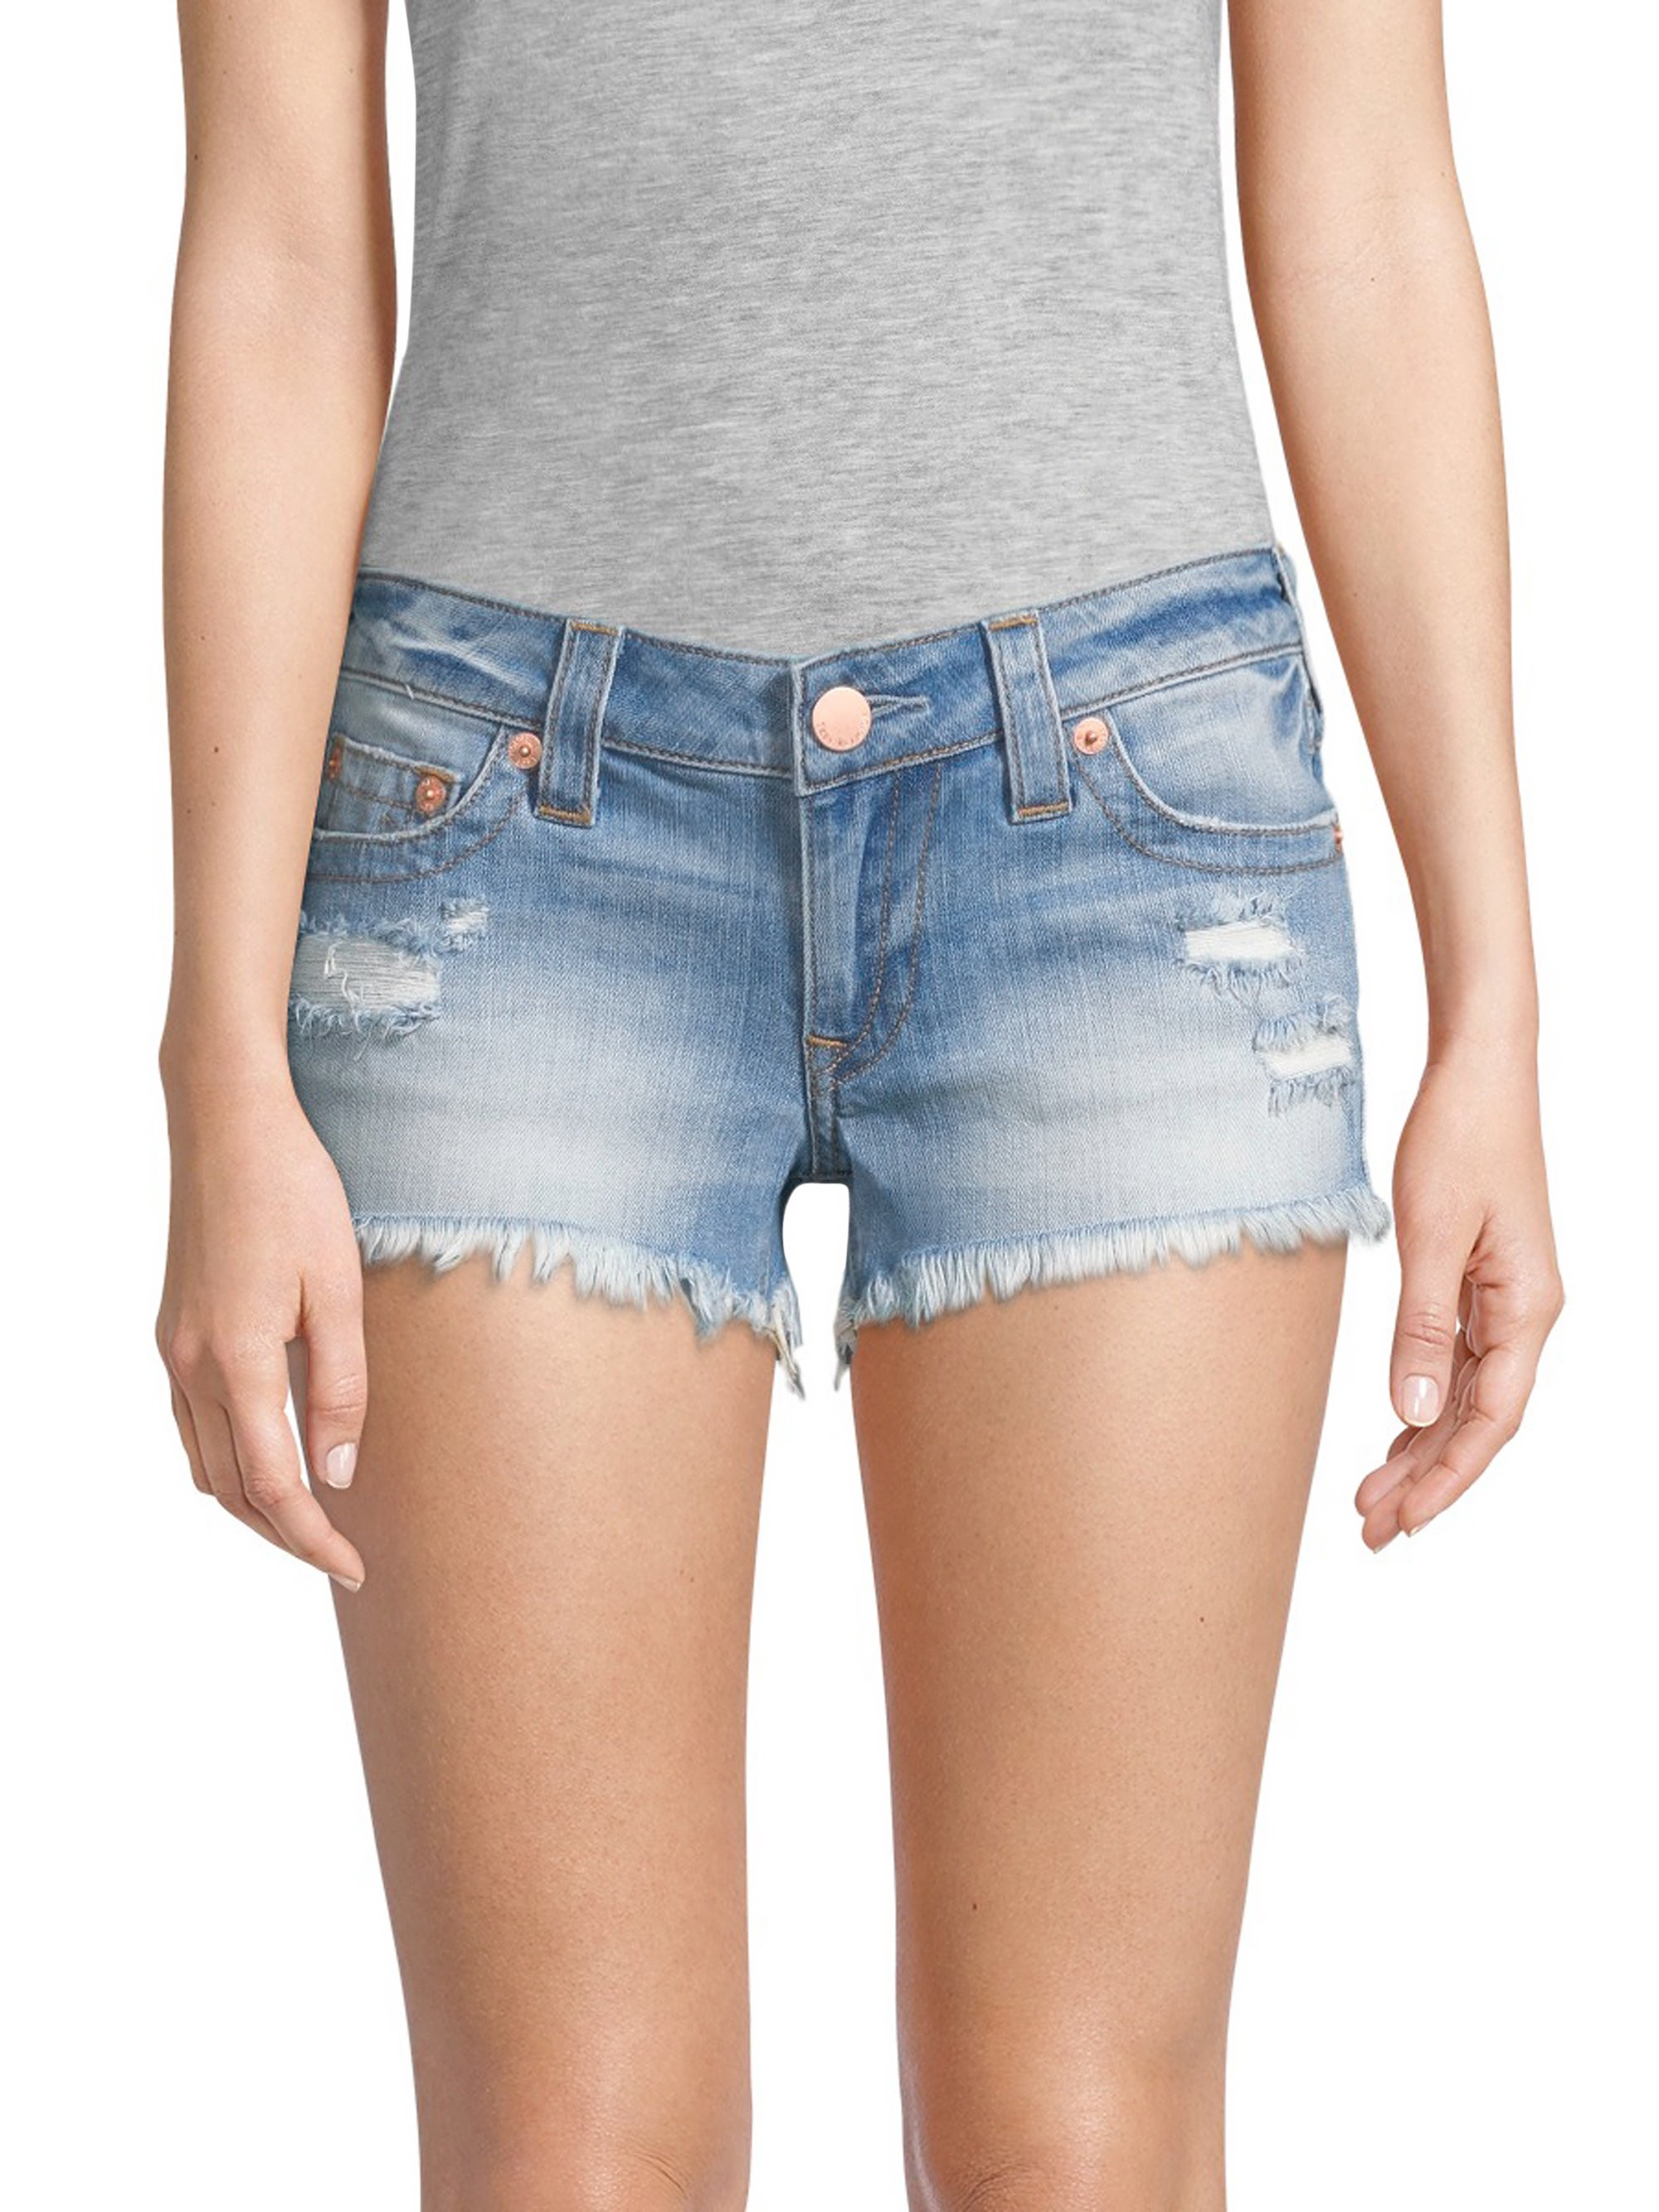 e0ad272fcd30 True Religion Joey Flap Cut-Off Denim Shorts - Eshl Third Quarter 25 ...